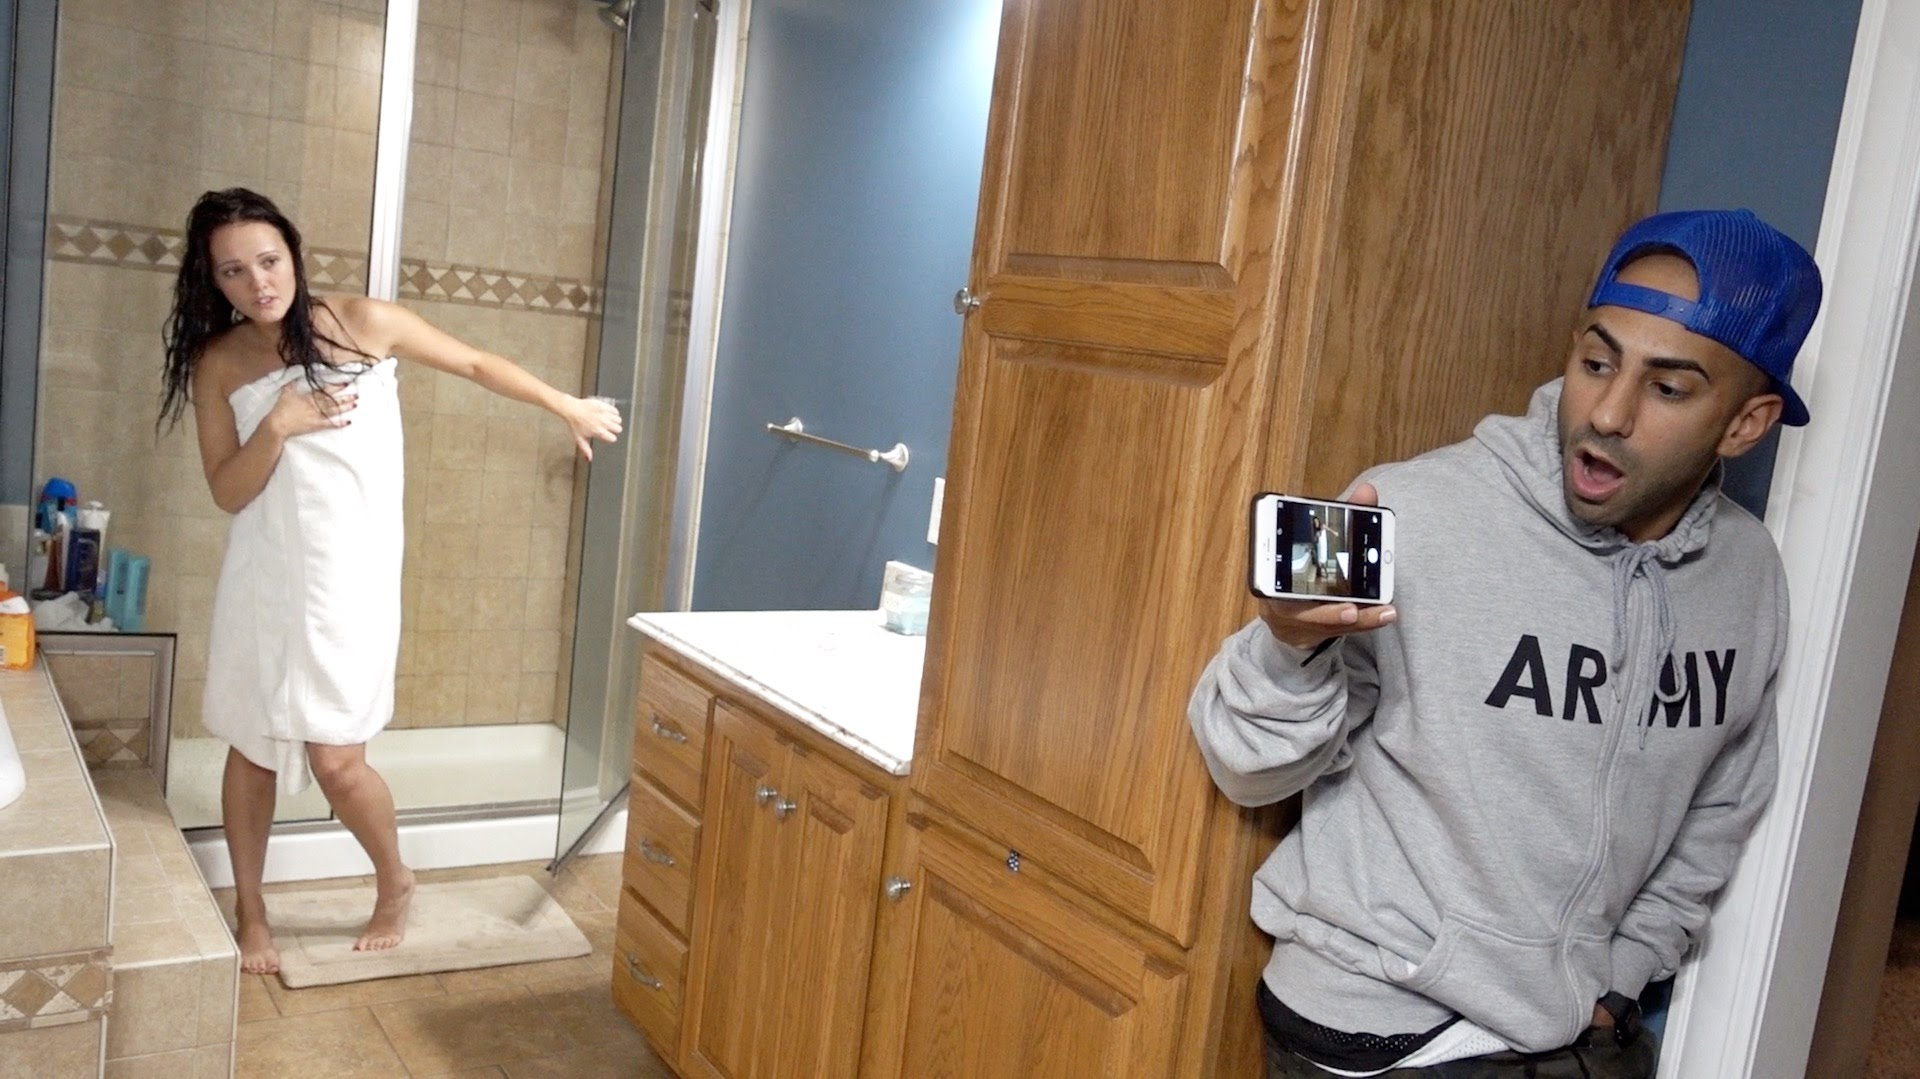 Naked shower prank